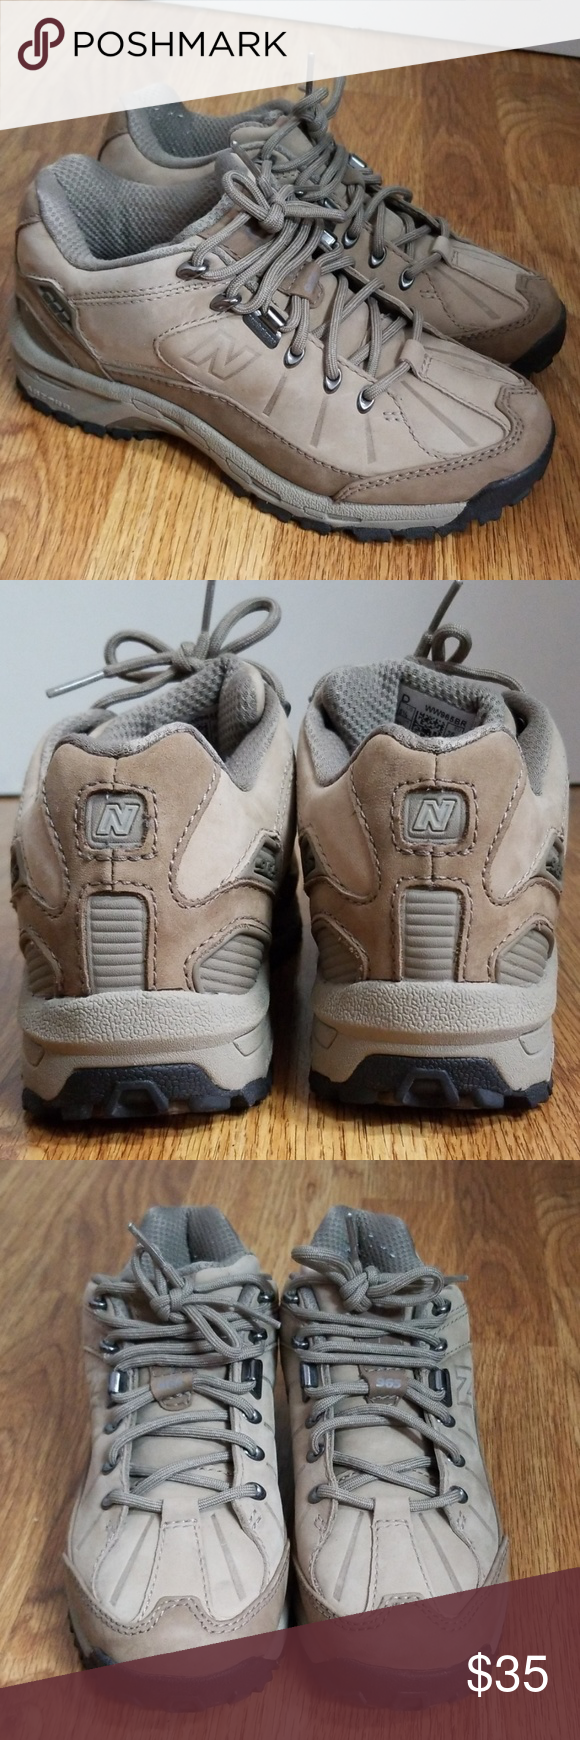 d4f296dd9f5 New Balance 965 Leather Country Walker Shoes If you like going off ...